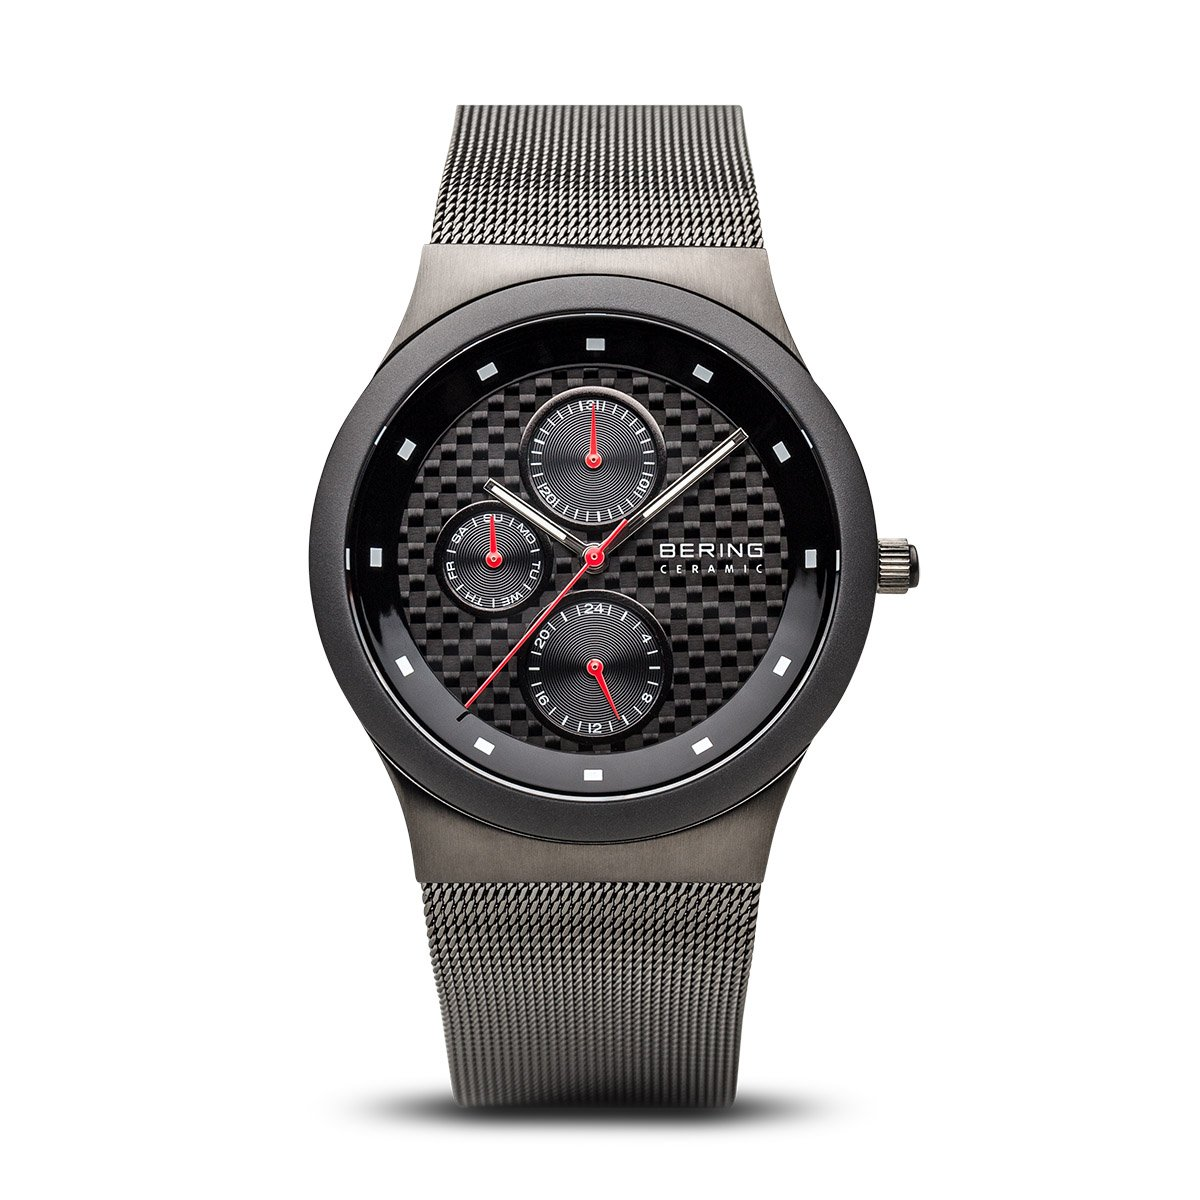 BERING Time 32139-309 Mens Ceramic Collection Watch with Mesh Band and scratch resistant sapphire crystal. Designed in Denmark.